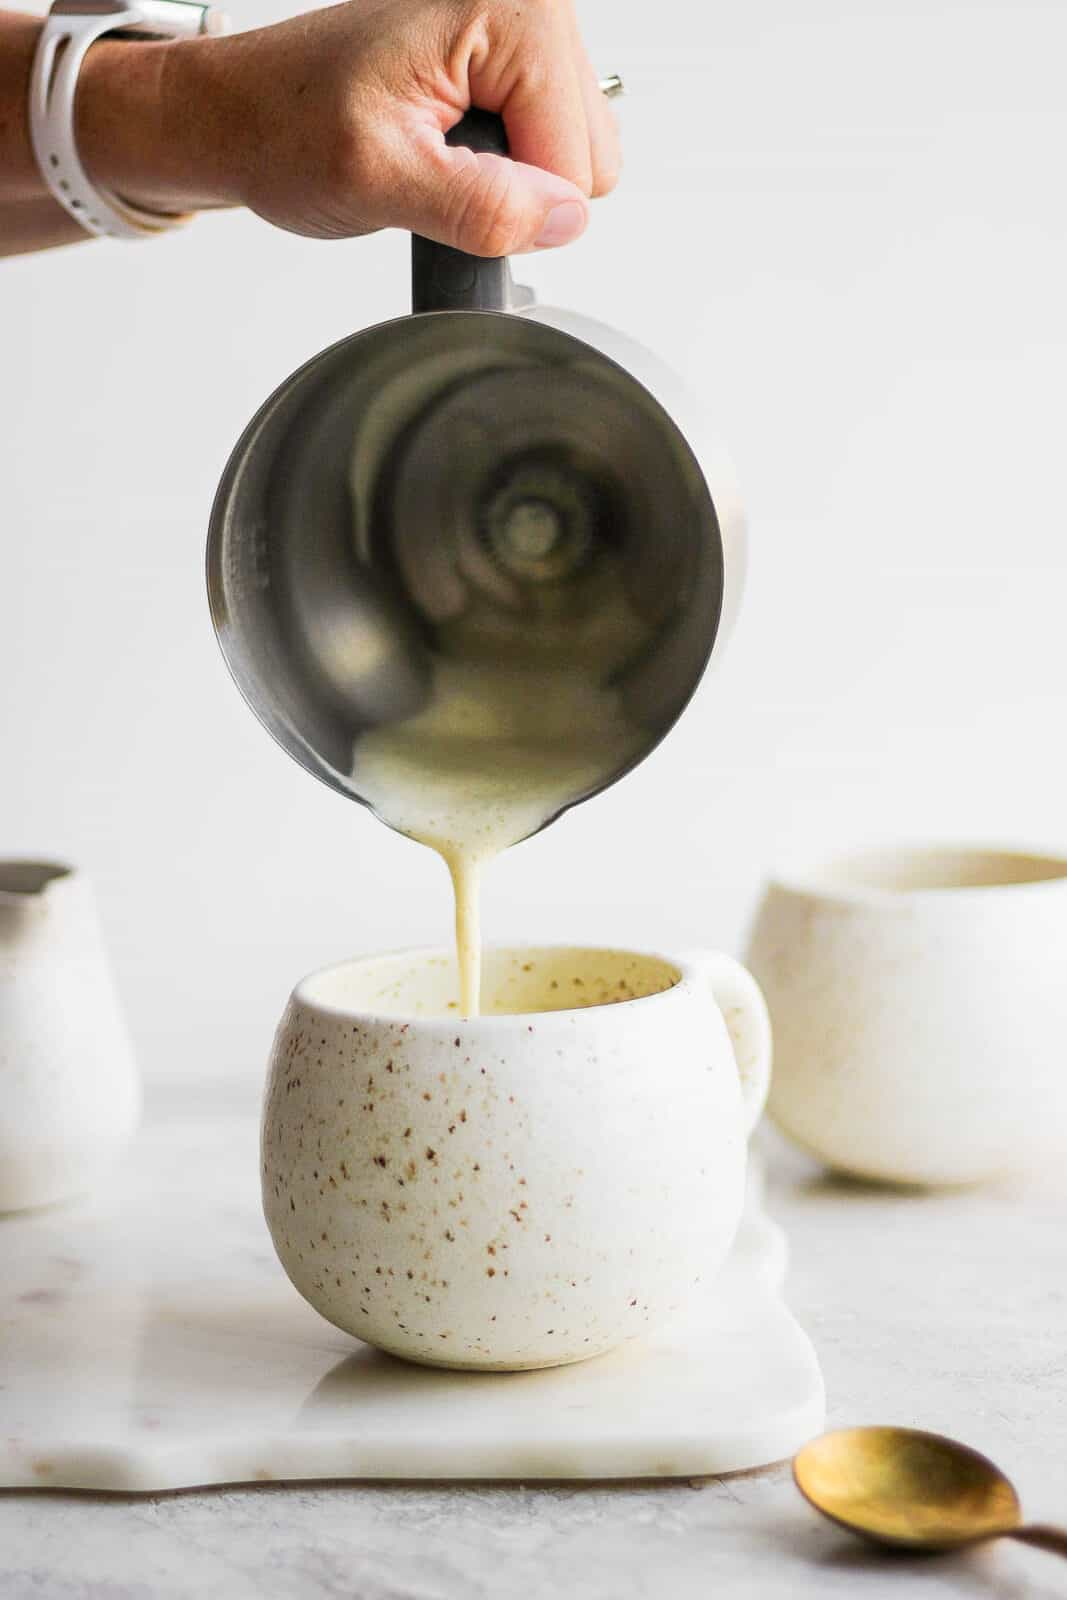 Pouring frothed pistachio milk on top of coffee in a mug.